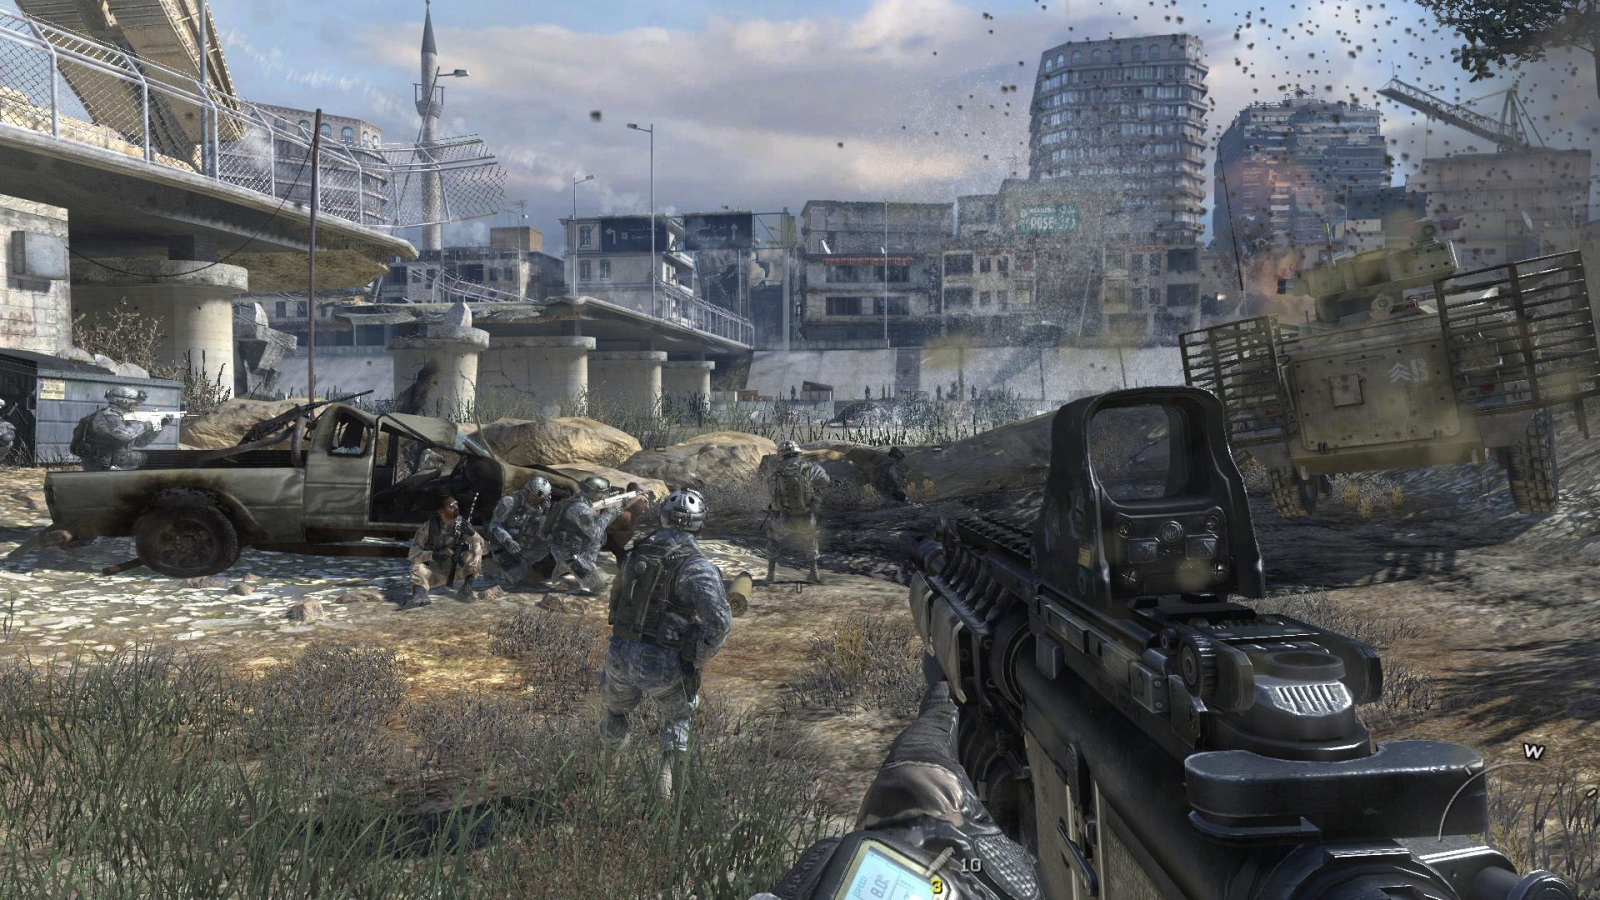 new maps for call of duty ghost with Why Modern Warfare 2 Remastered Is  Ing In 2017 on Will Ghosts Mp Character Customization Be Similar To Chinas Cod Online in addition Chain SAW also Call Of Duty Black Ops 3 Beta All The Weapons Available likewise Armed Solar Associated Treaty Organization Apc Add On likewise File AH 64 Apache model MW2.